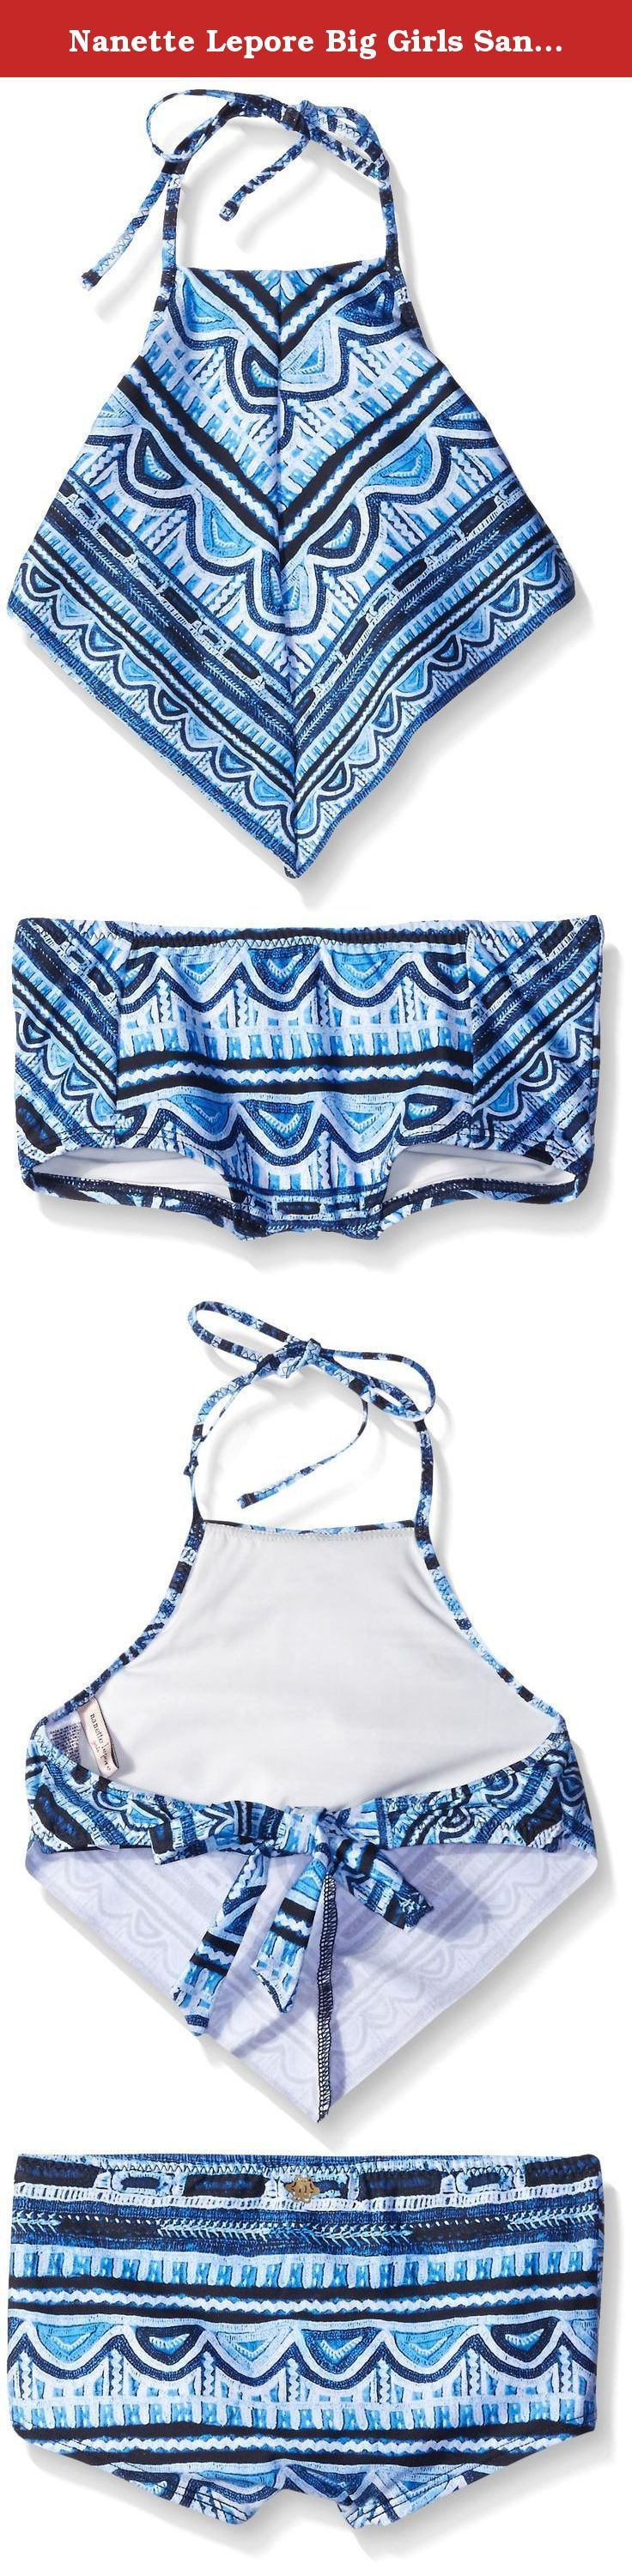 Nanette Lepore Big Girls Santorini Scallop Handkerchief Top with Surf Short, Indigo, 8. Tween sized teenager tankini sets teen swim swimsuits swimming pool beach favorite suit girl girls top and bottom ropa traje de bano swimsuit number 1 best fav de la mar.